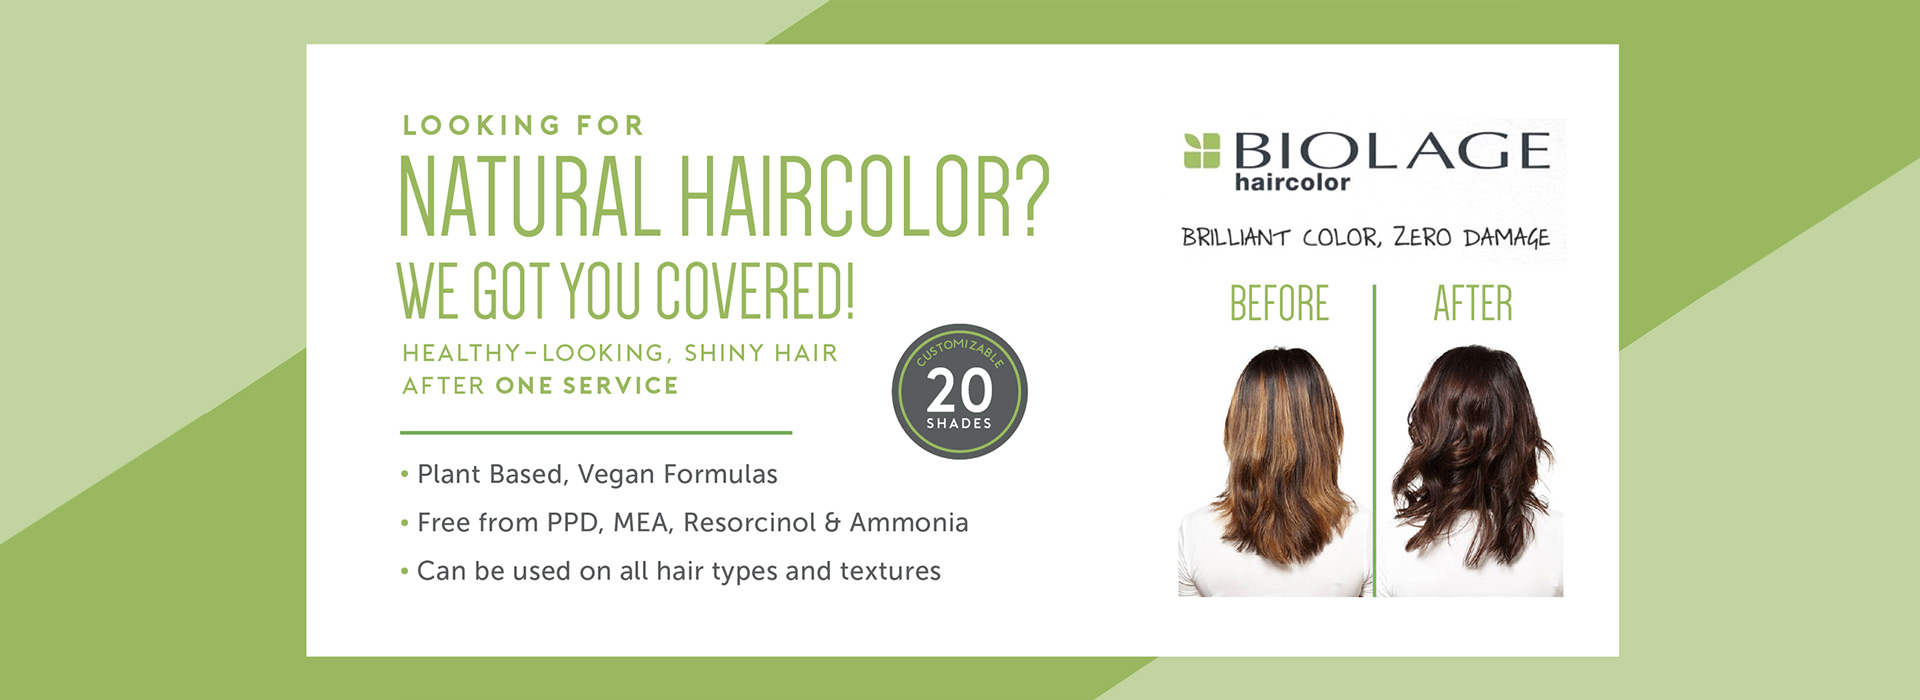 Looking for natural hair color? We've got you covered with Biolage Haircolor. Brillian Color, Zero Damage.